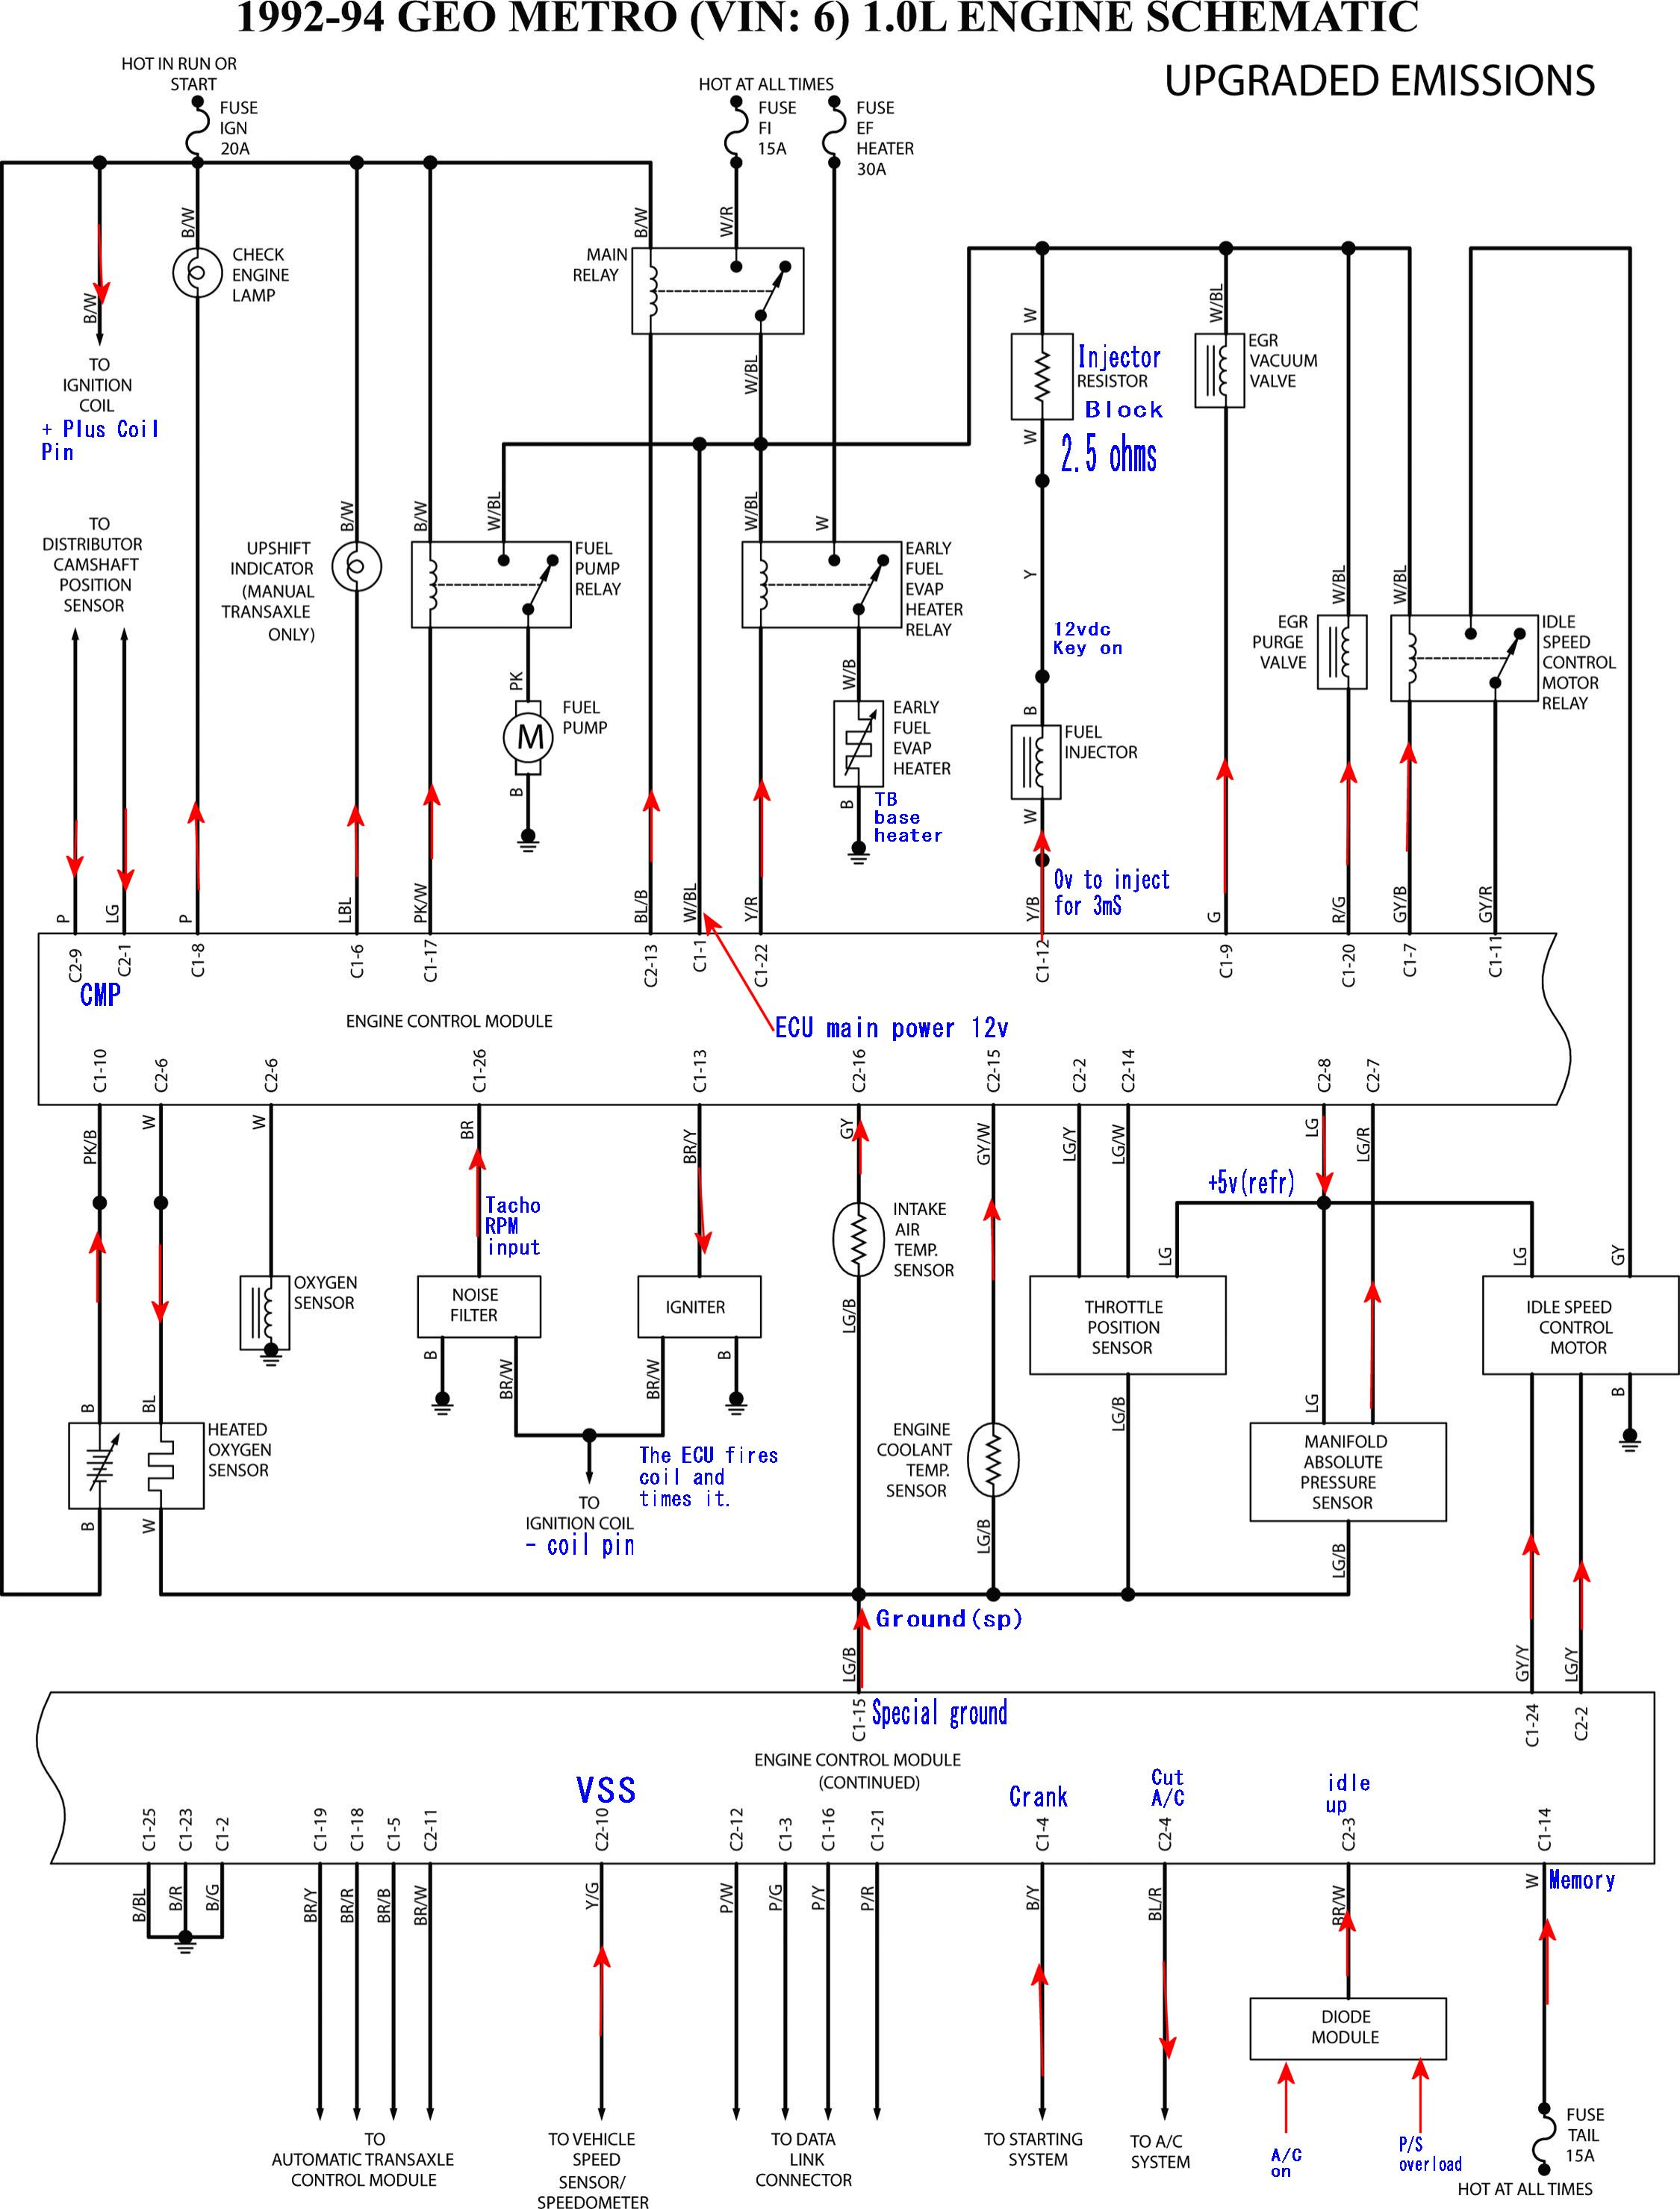 Ls1 Ignition Coil Wiring Diagram Schematics Earthwise Pressure Washer Diagrams Howell Tbi Help Trusted 97